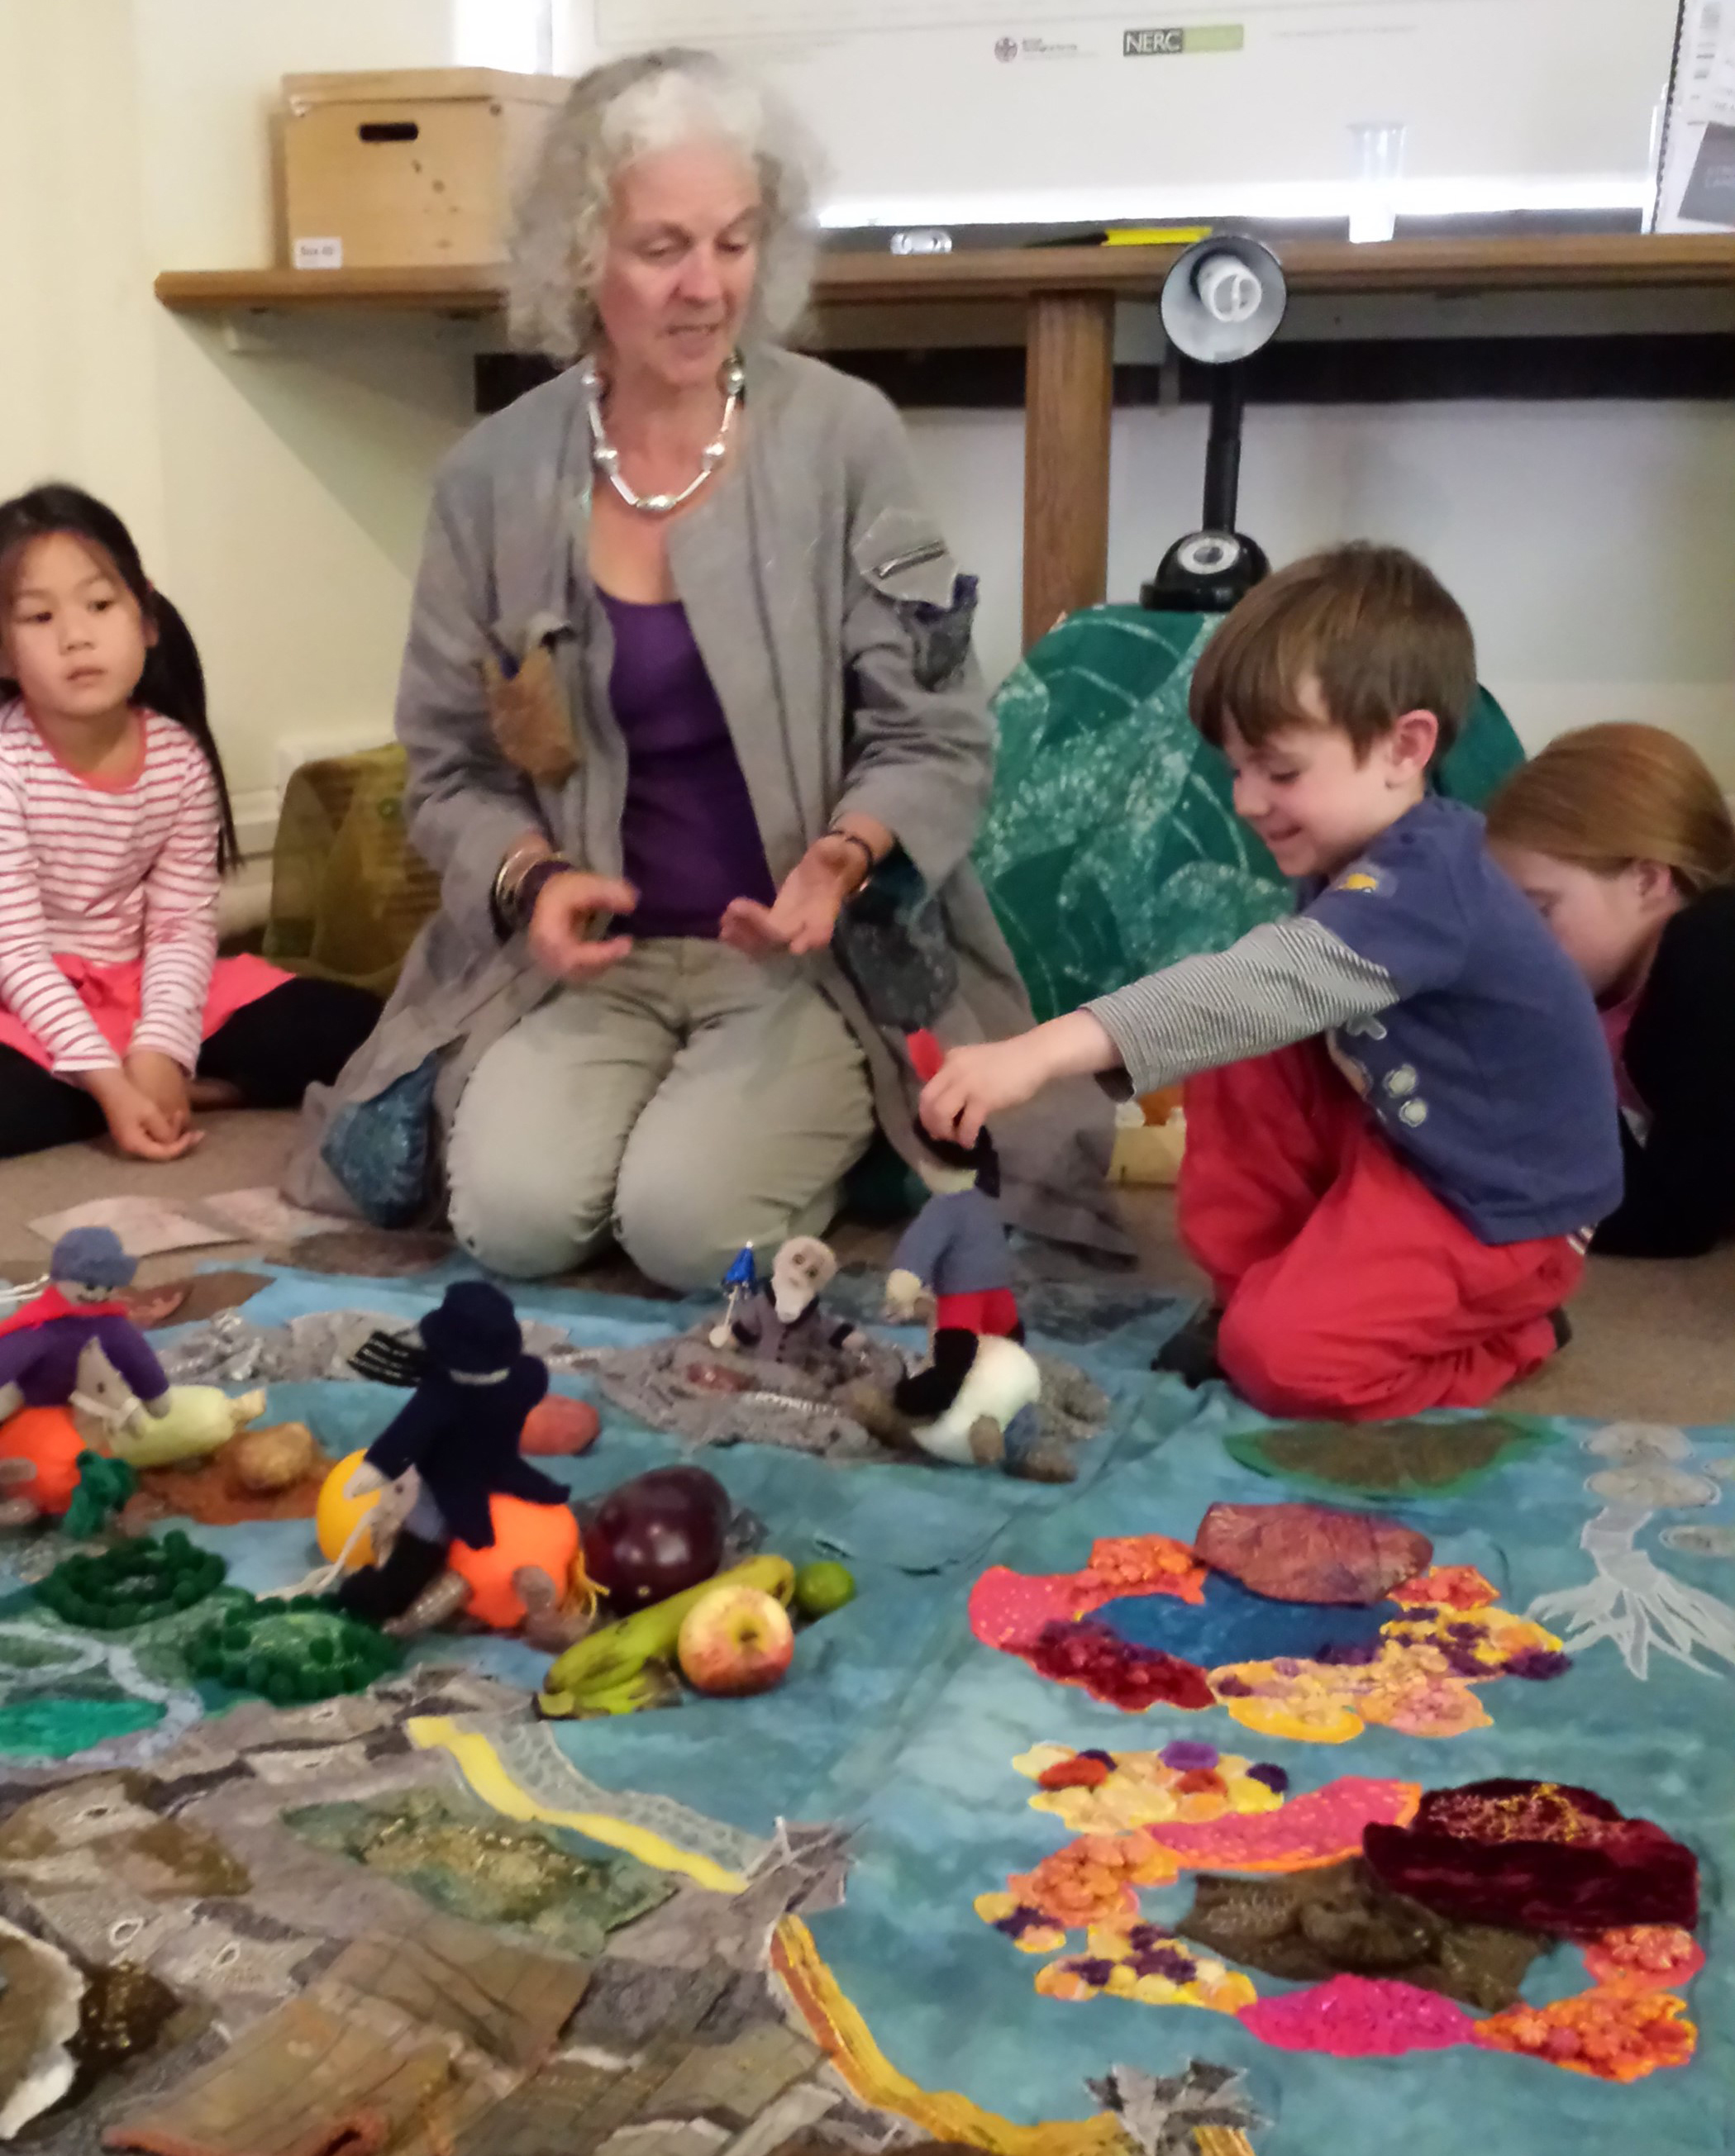 A photo of Marion engaging with and telling a story to small children on a colourful mat at a playgroup.